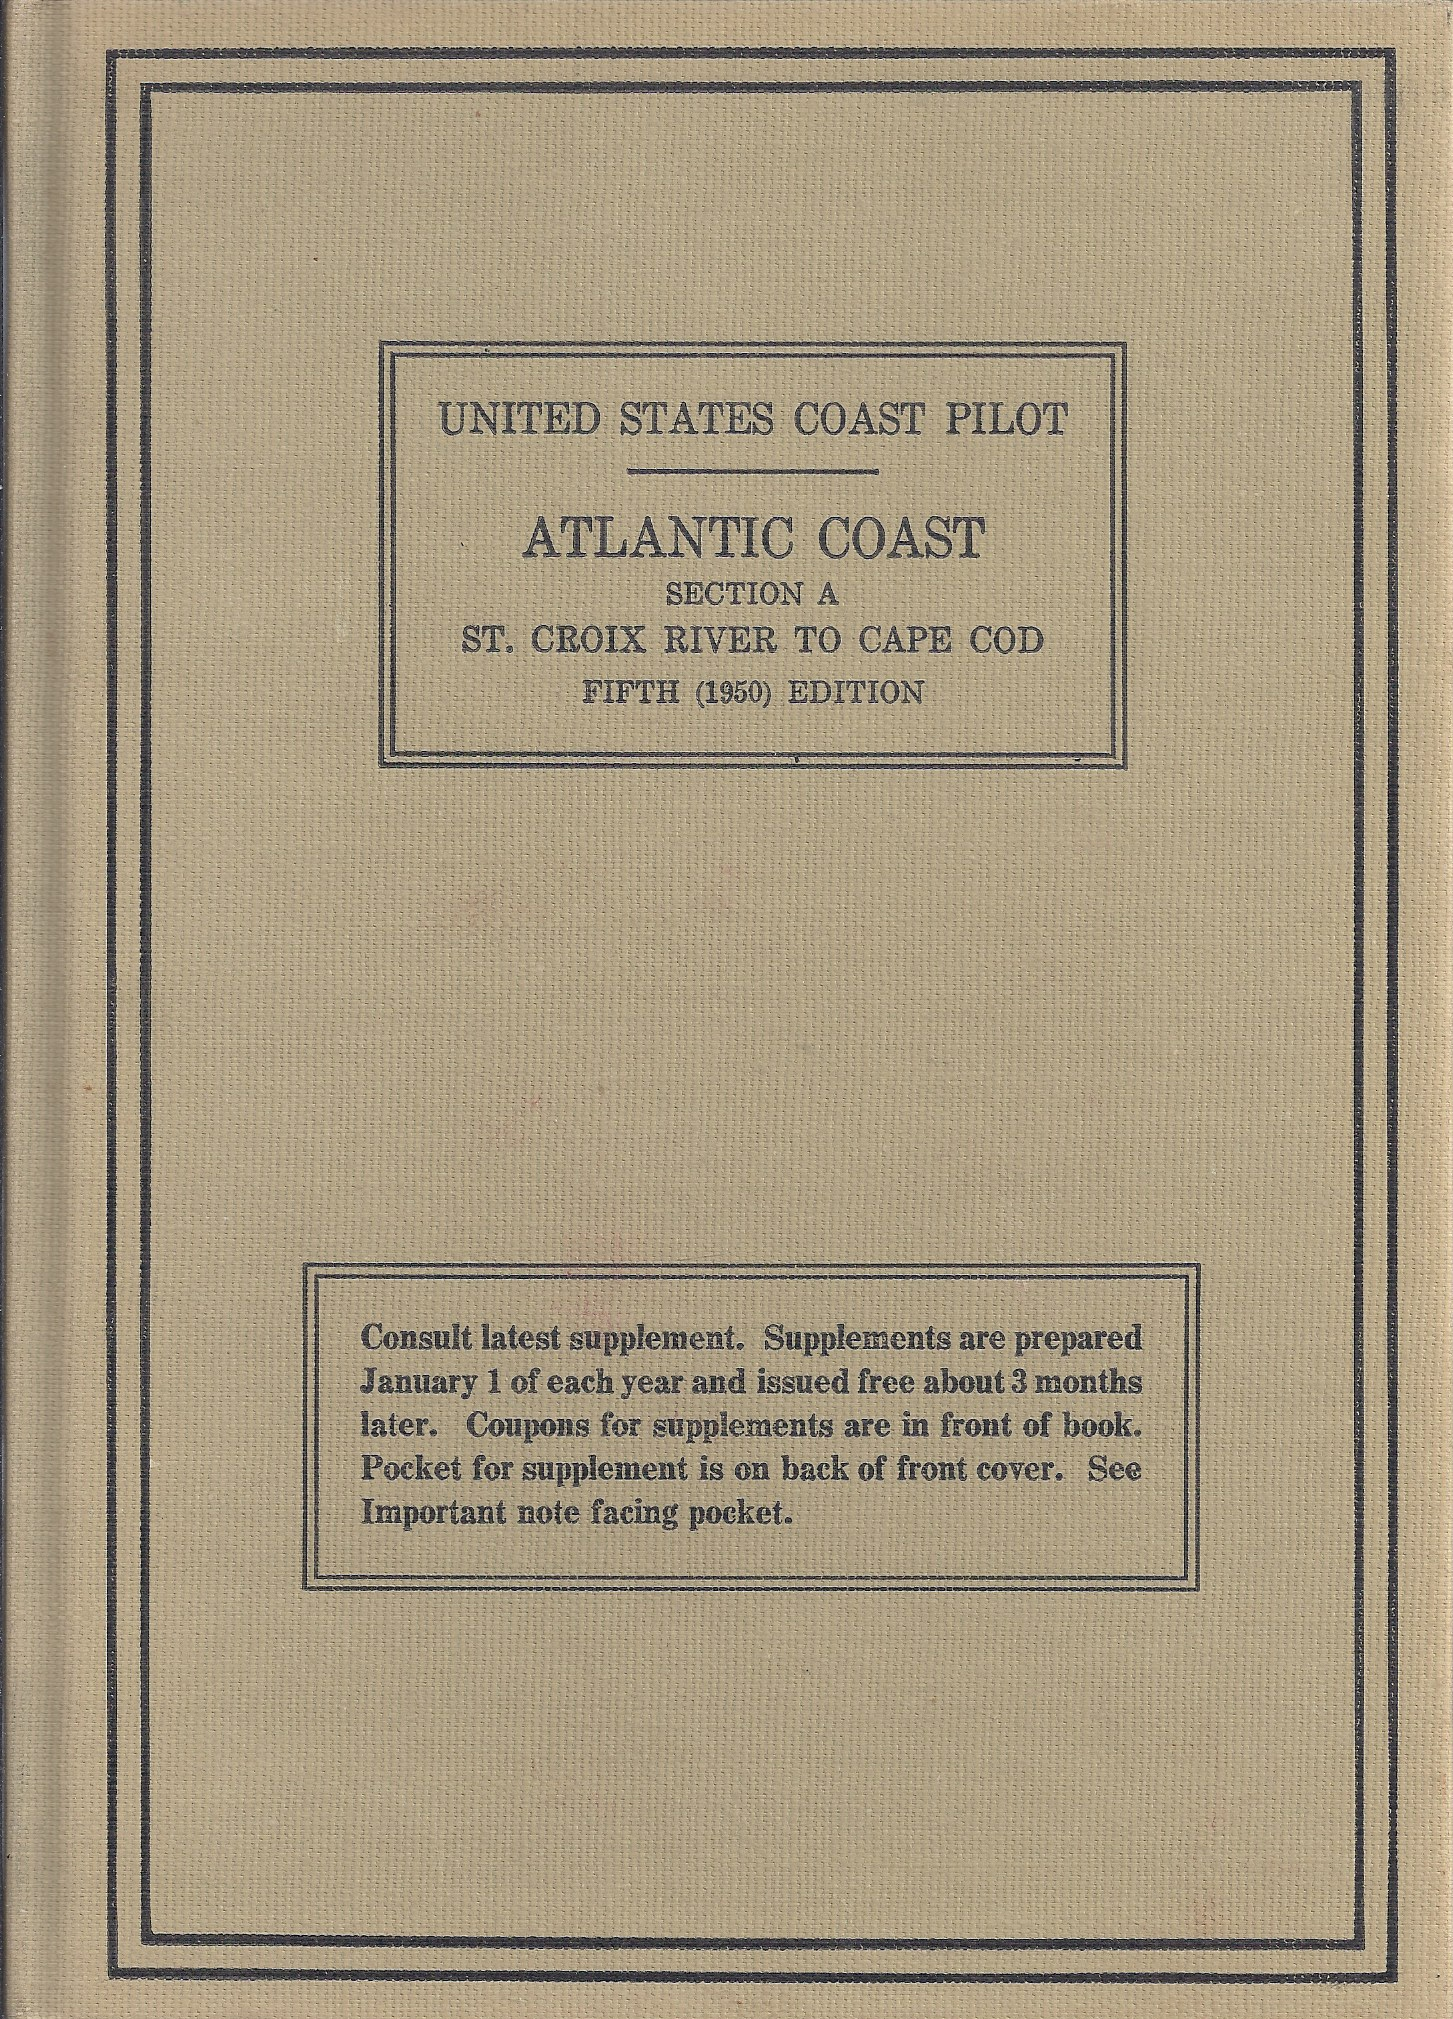 Image for United States Coast Pilot, Atlantic Coast Section A St. Croix River to Cape Cod